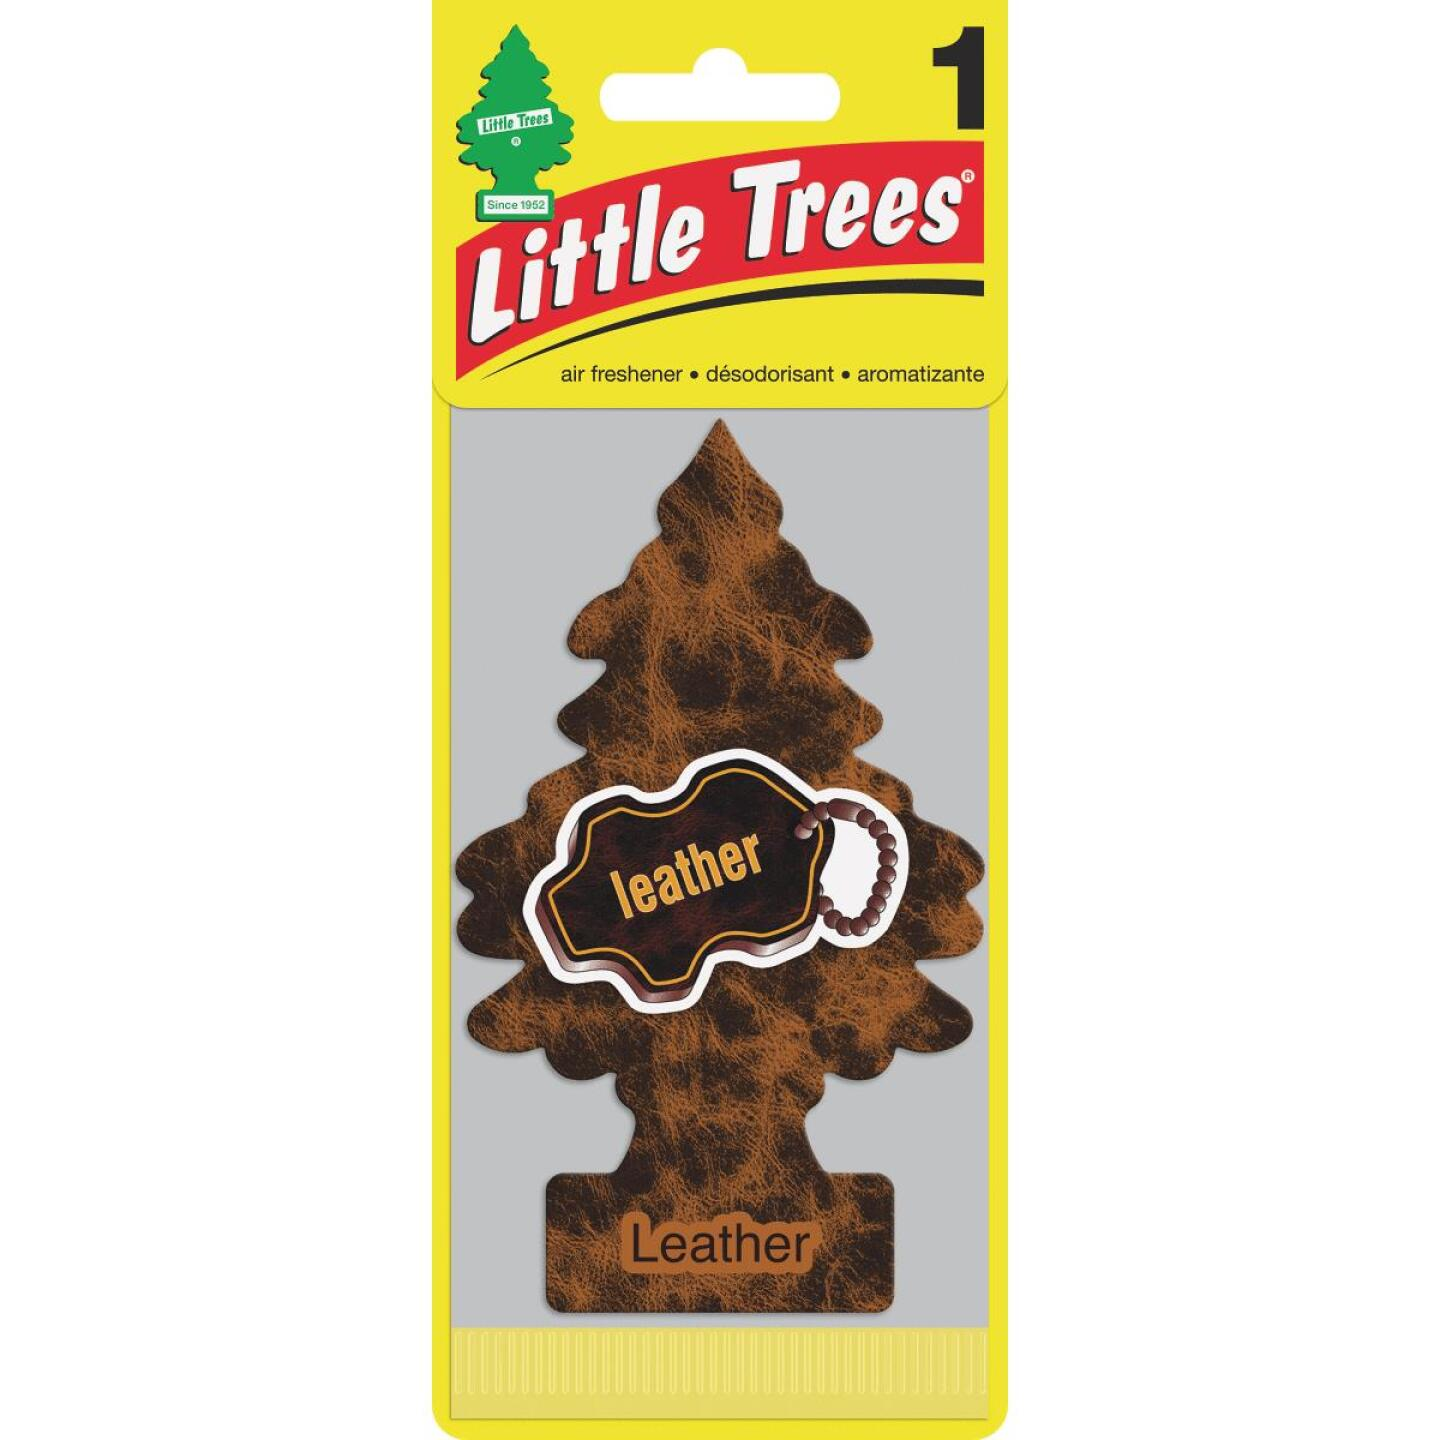 Little Trees Car Air Freshener, Leather Image 1